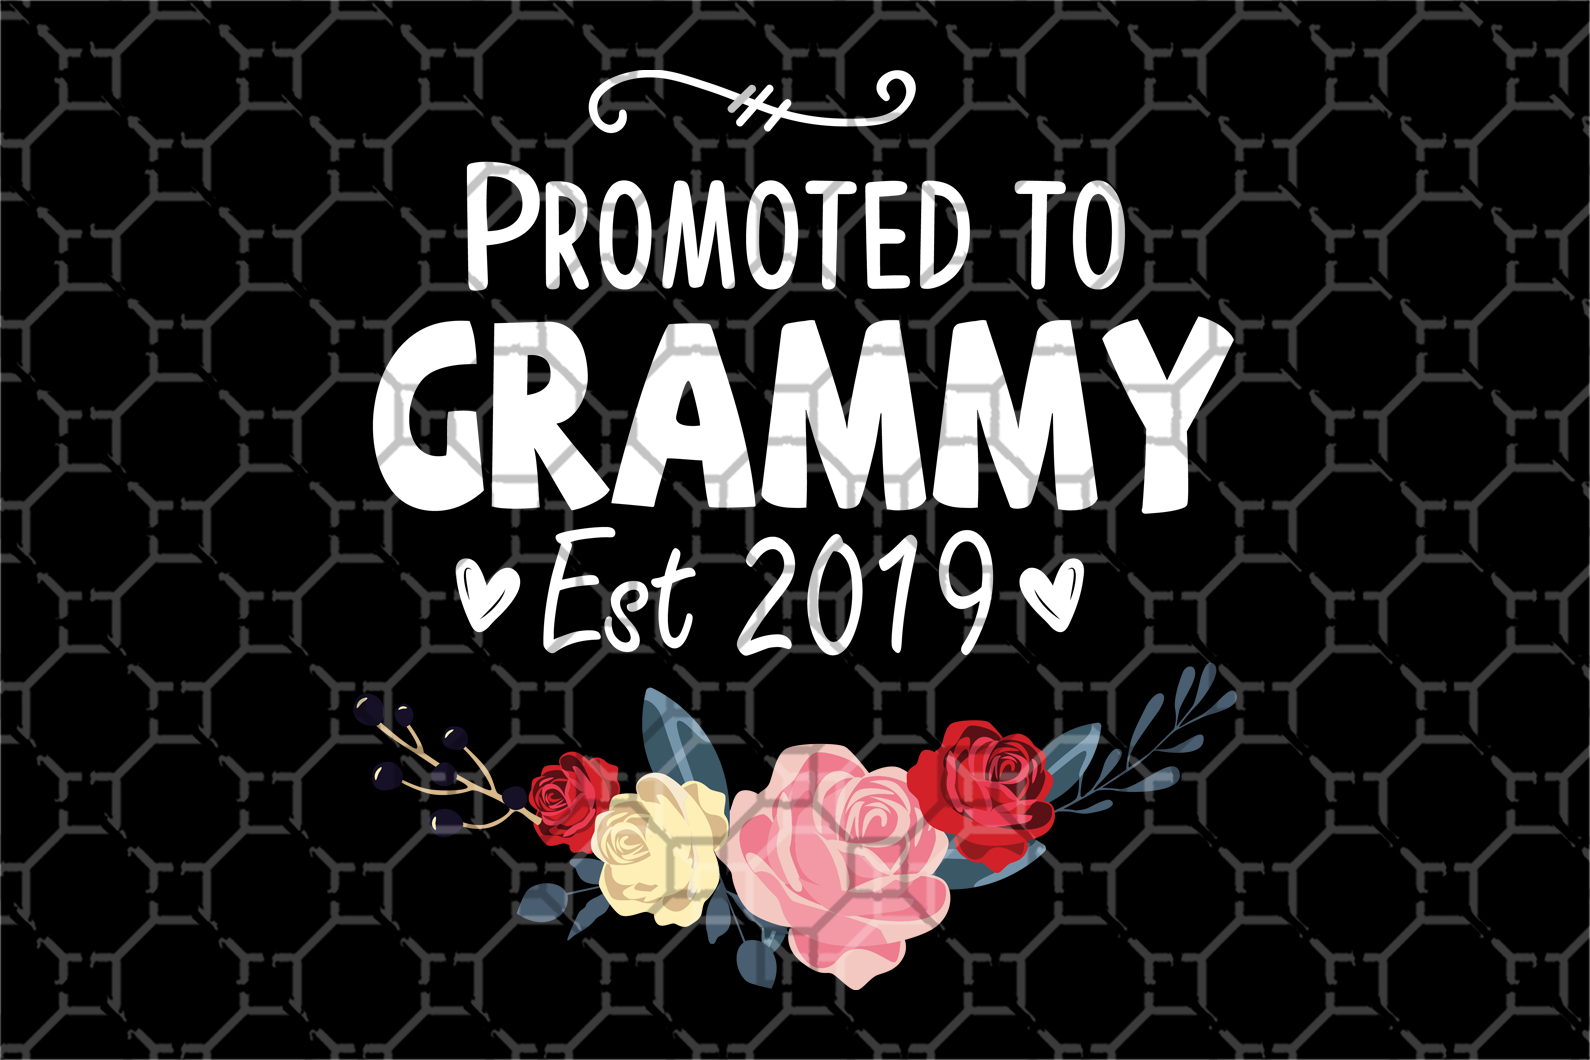 Promoted to grammy, mother's day svg, mother day, mother svg, mom svg, nana svg, mimi svg For Silhouette, Files For Cricut, SVG, DXF, EPS, PNG Instant Download